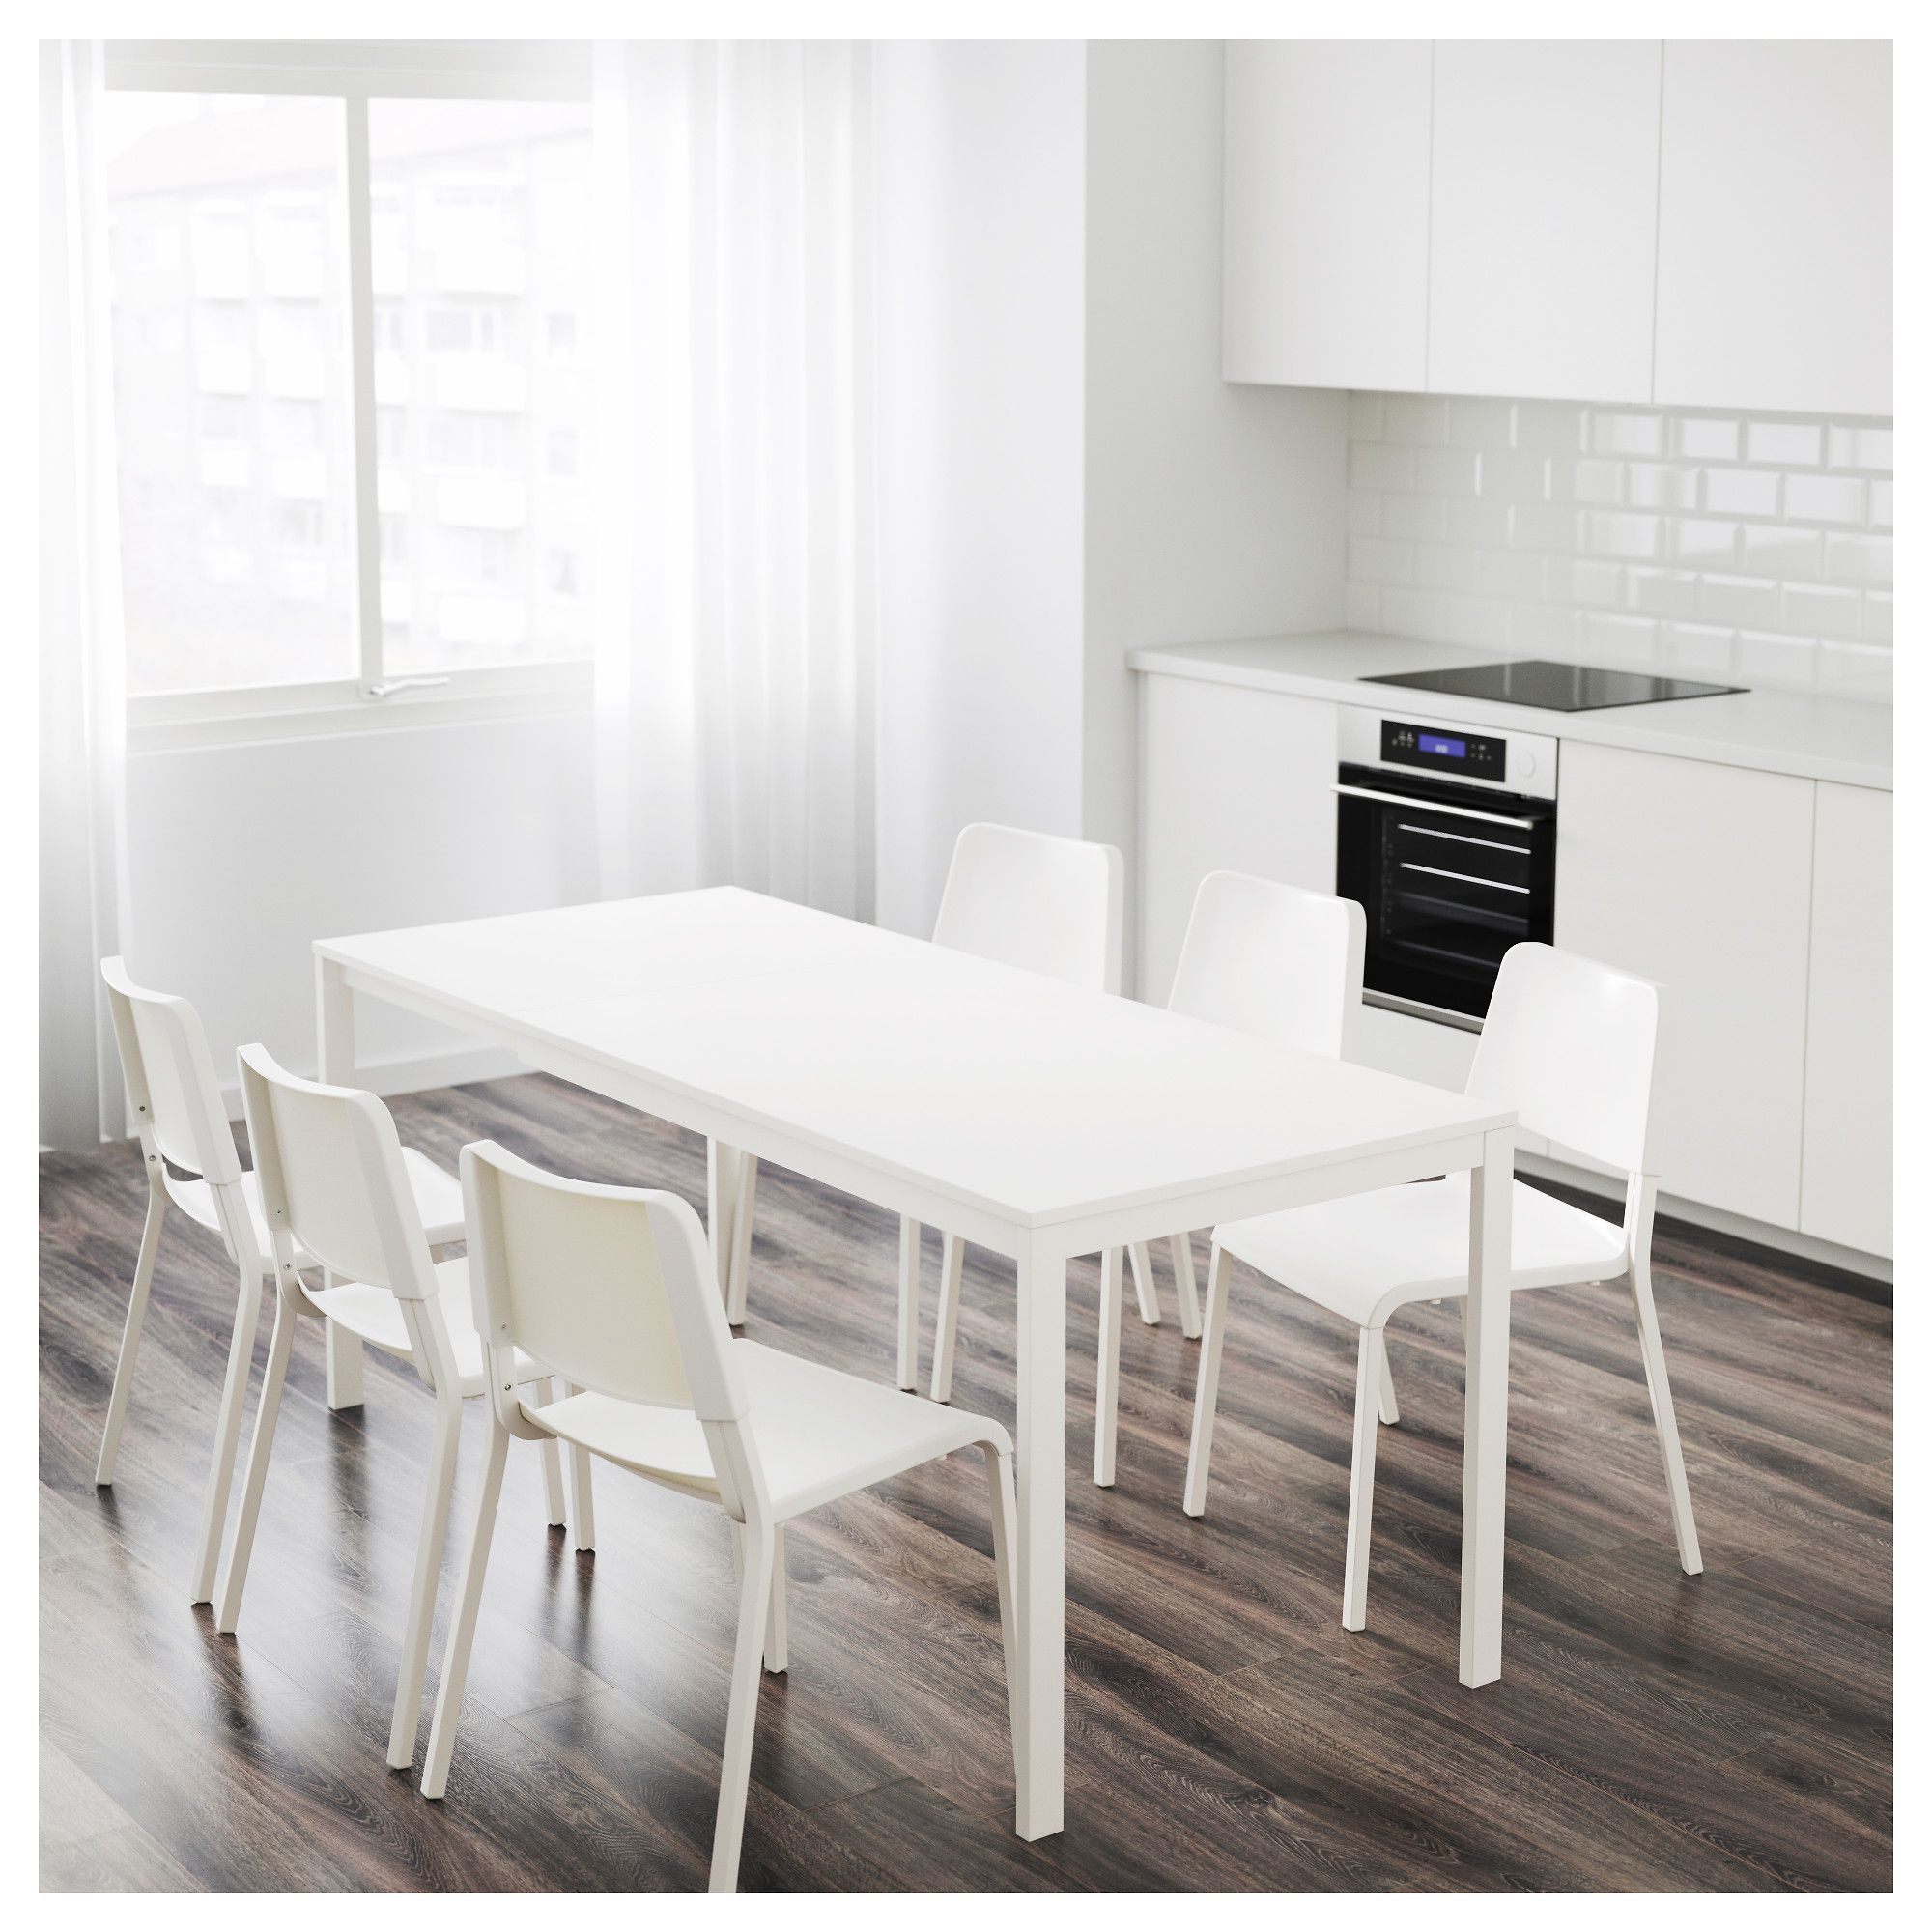 Sedia Vilmar Ikea Nera Vangsta Extendable Table White طاولات طعام Extendable Dining